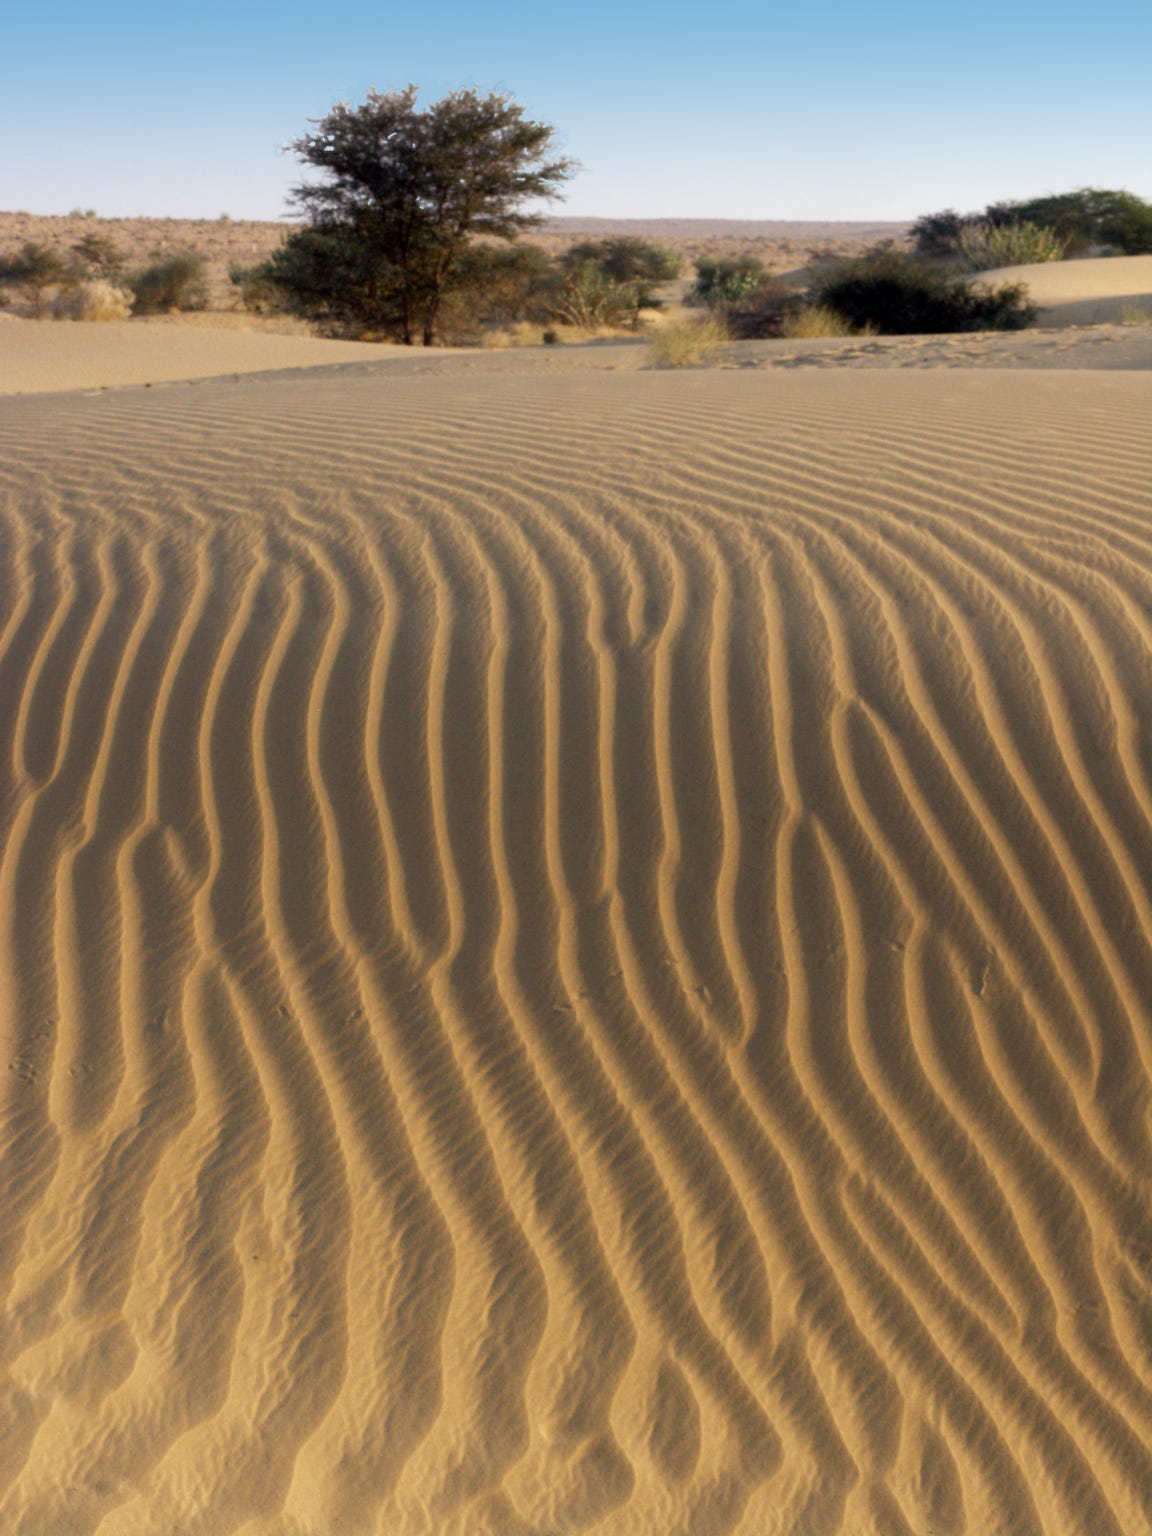 Dune fields in India's Thar Desert